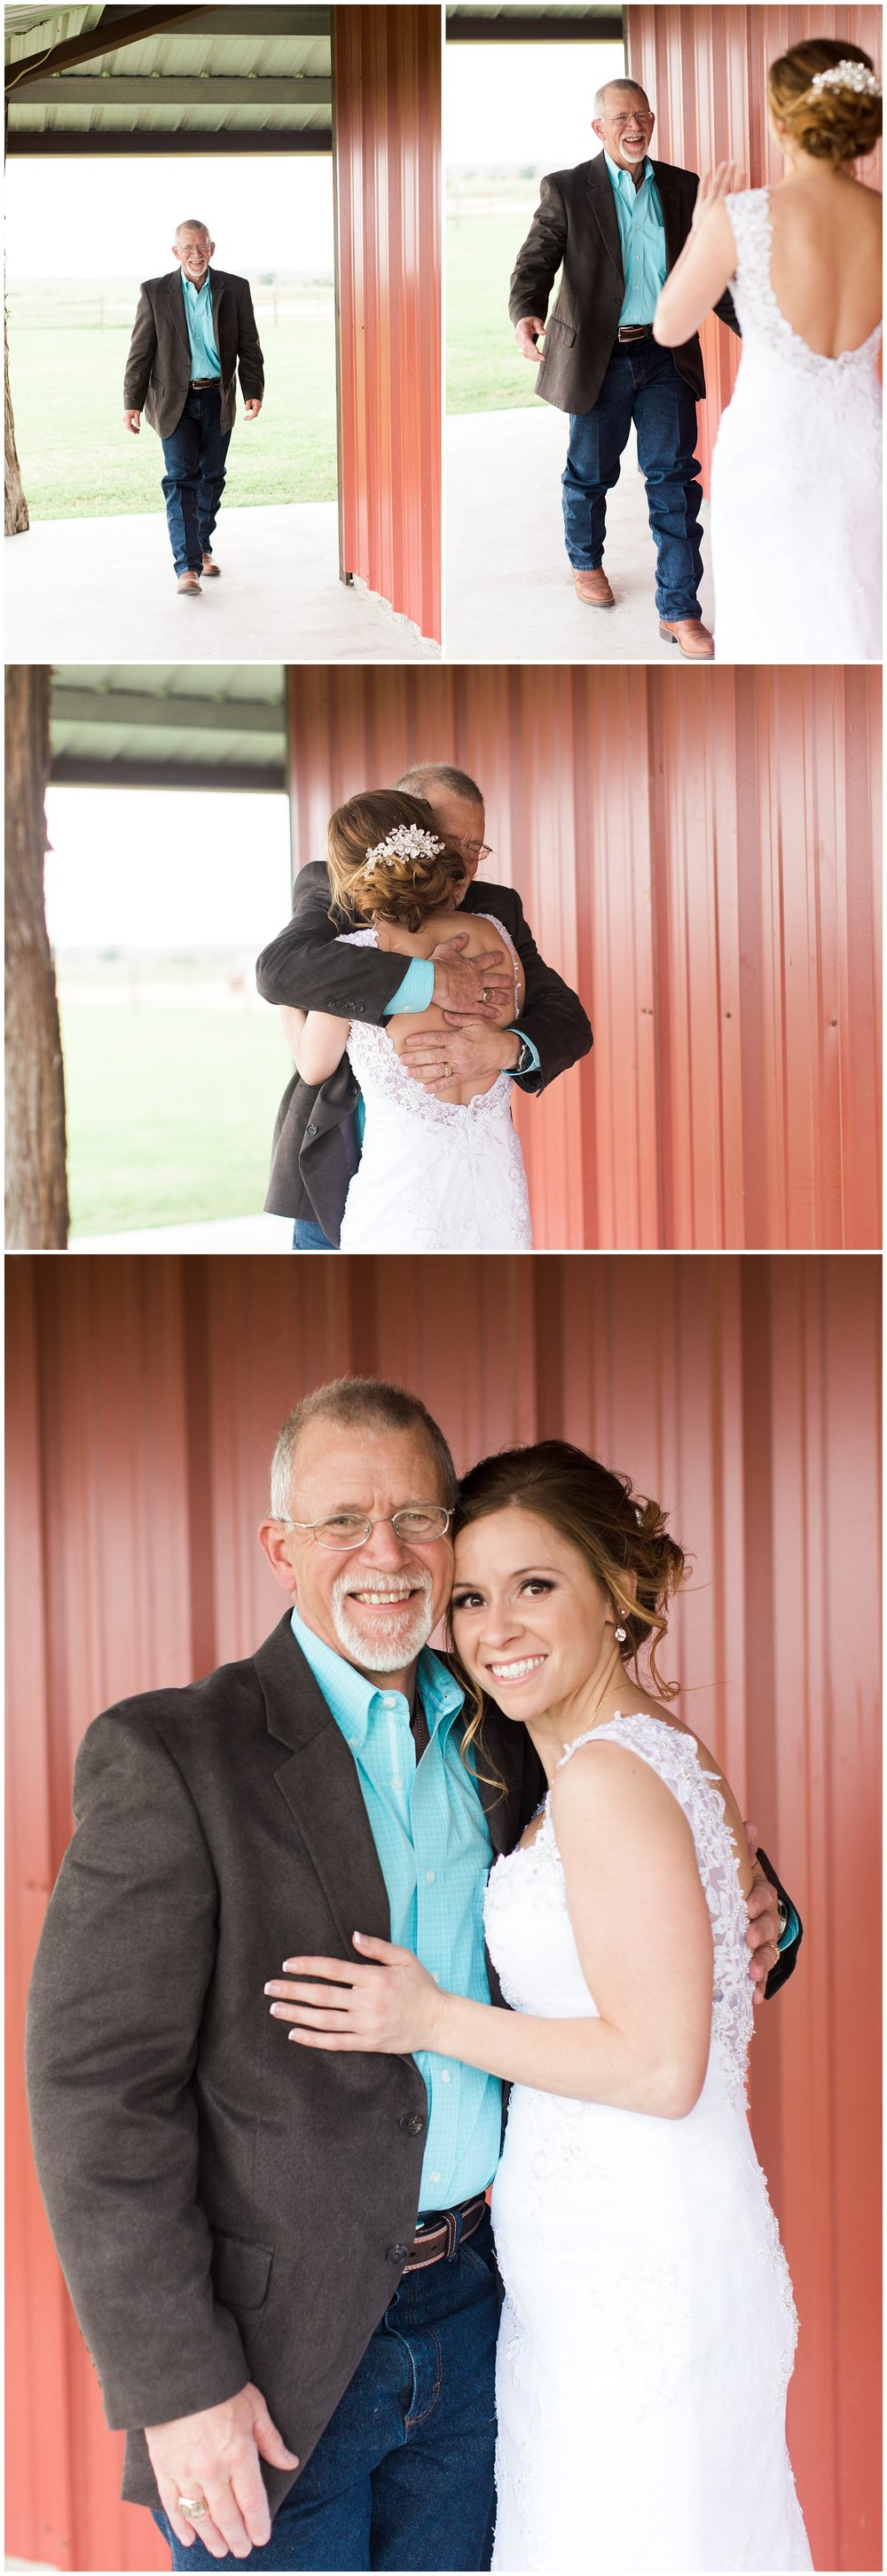 Moore_Ranch_on_the_Brazos_Wedding_0006.jpg